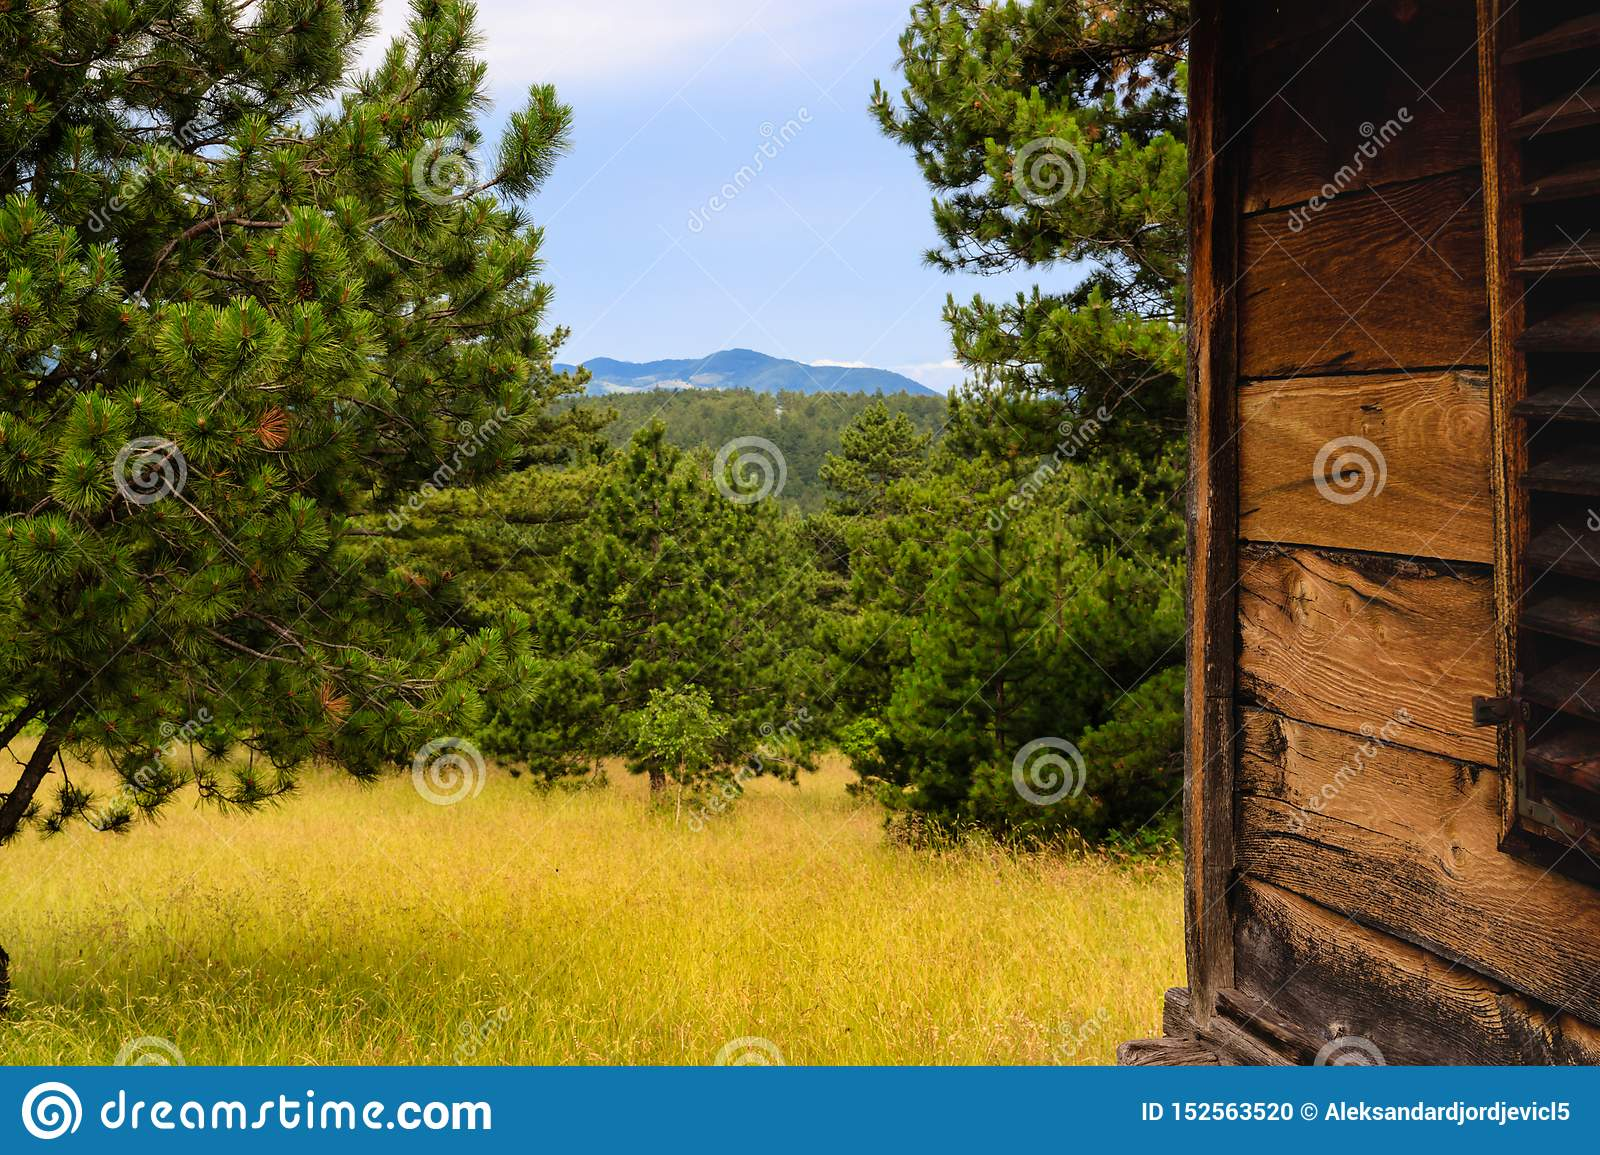 Mountain scenery behind old wooden cottage